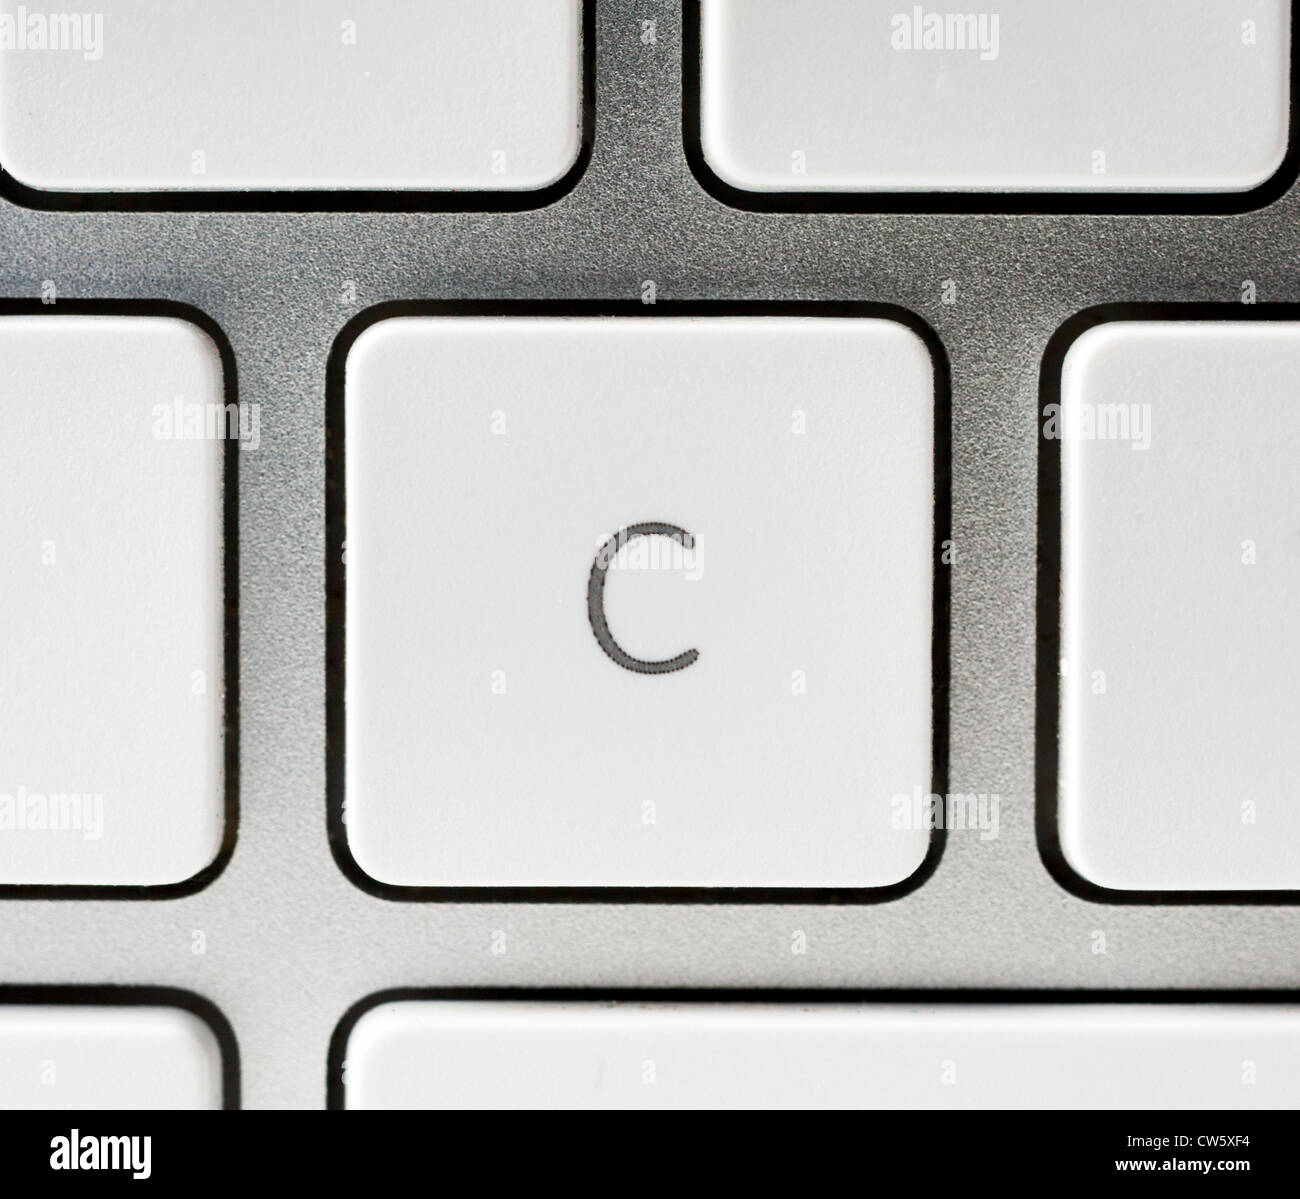 Letter C on an Apple keyboard - Stock Image